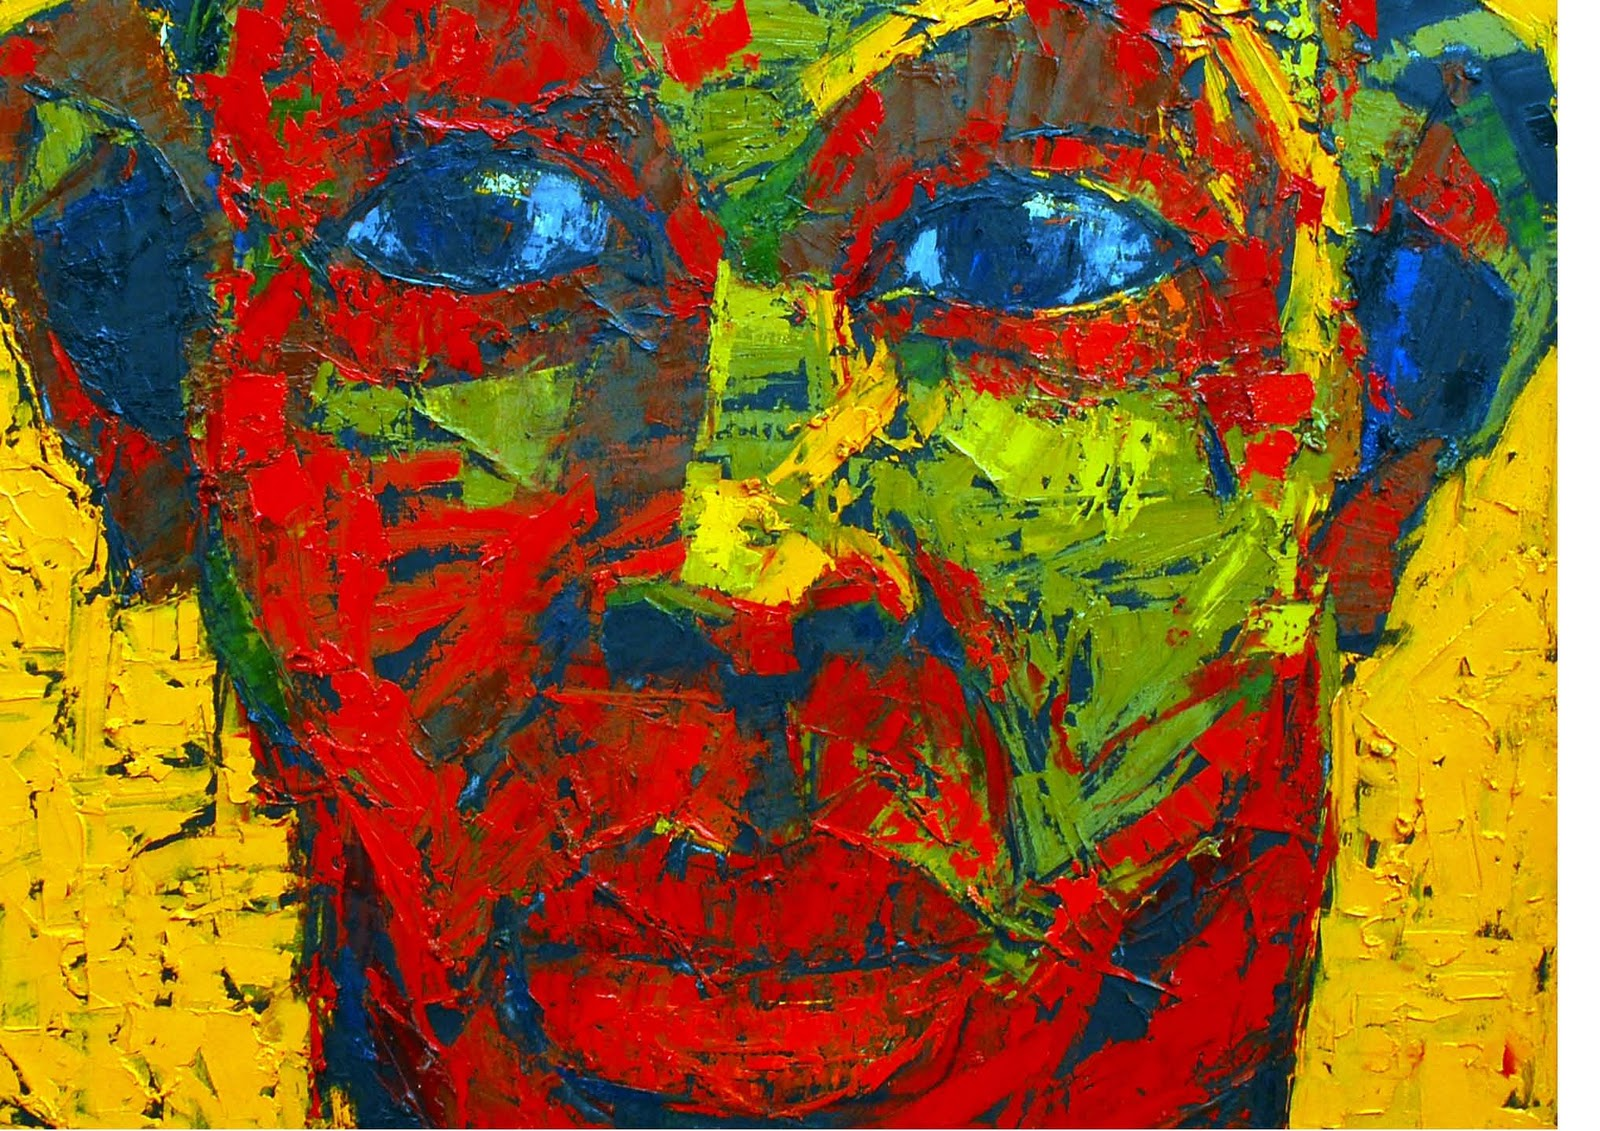 Alex nwokolos oju face series is among the works for the abuja auction